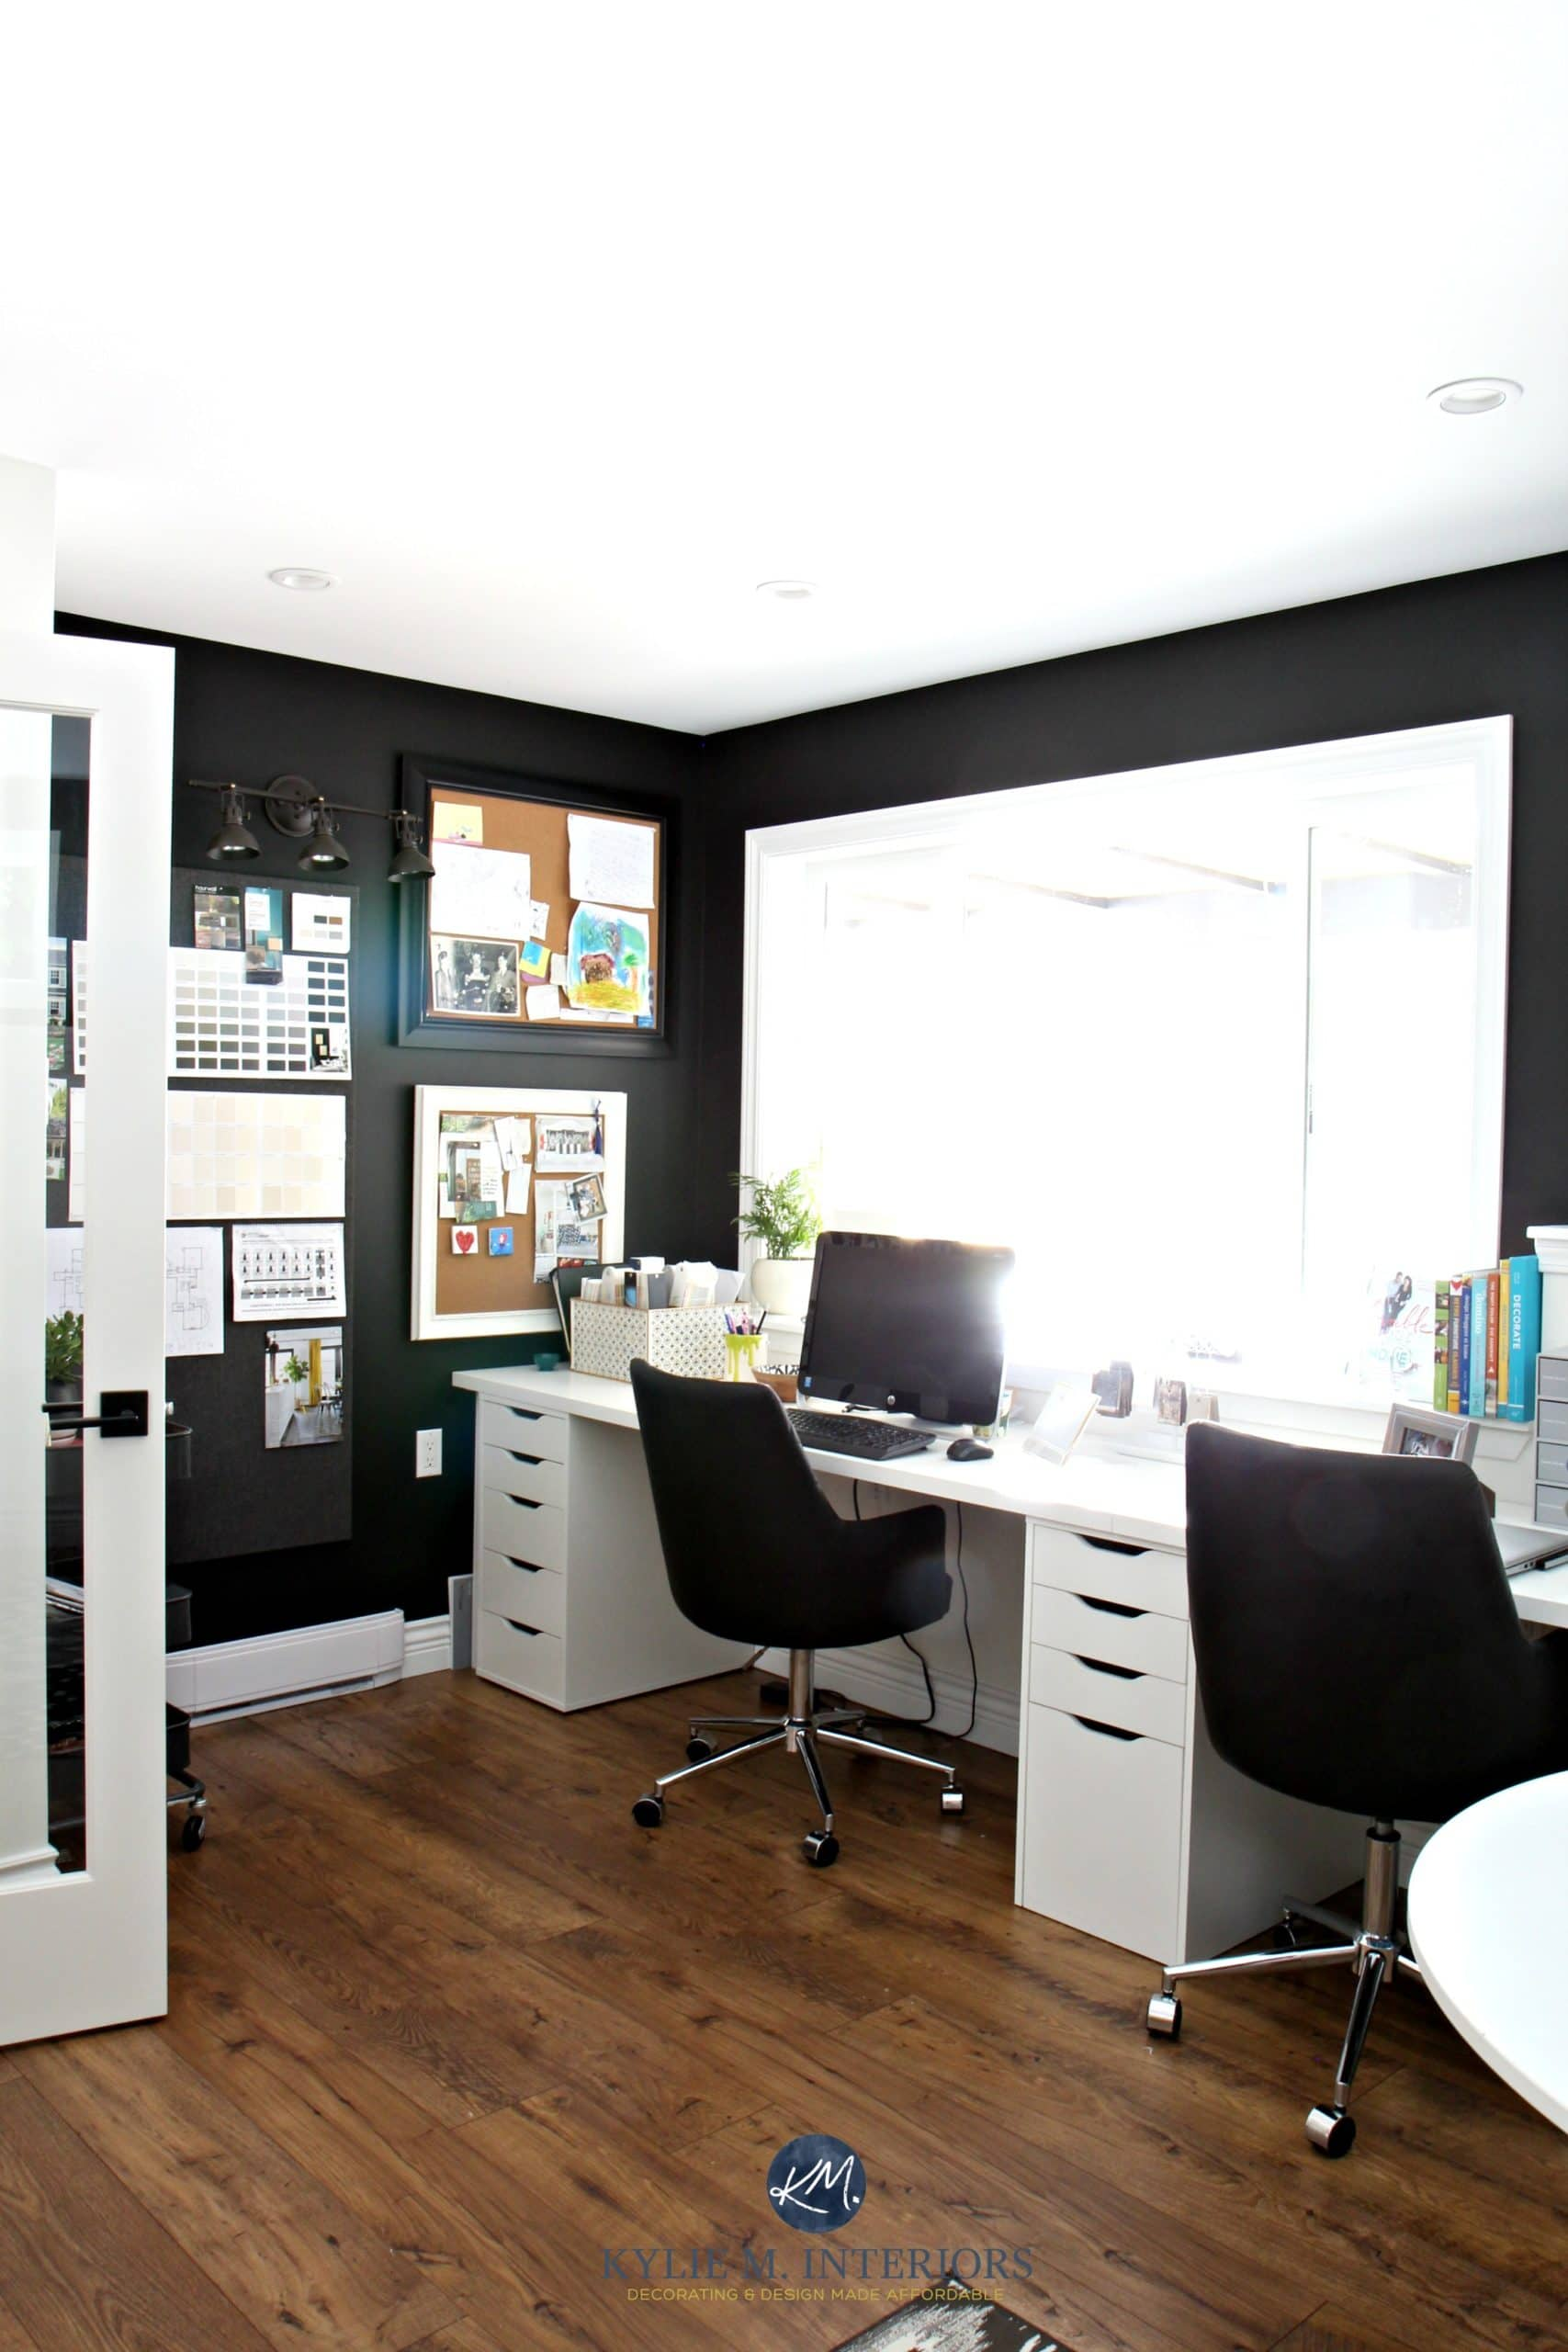 Charmant Home Office With Sherwin Williams Tricorn Black, Alex Desk And Decorating  With Corkboards. Kylie M Interiors Virtual And E Design